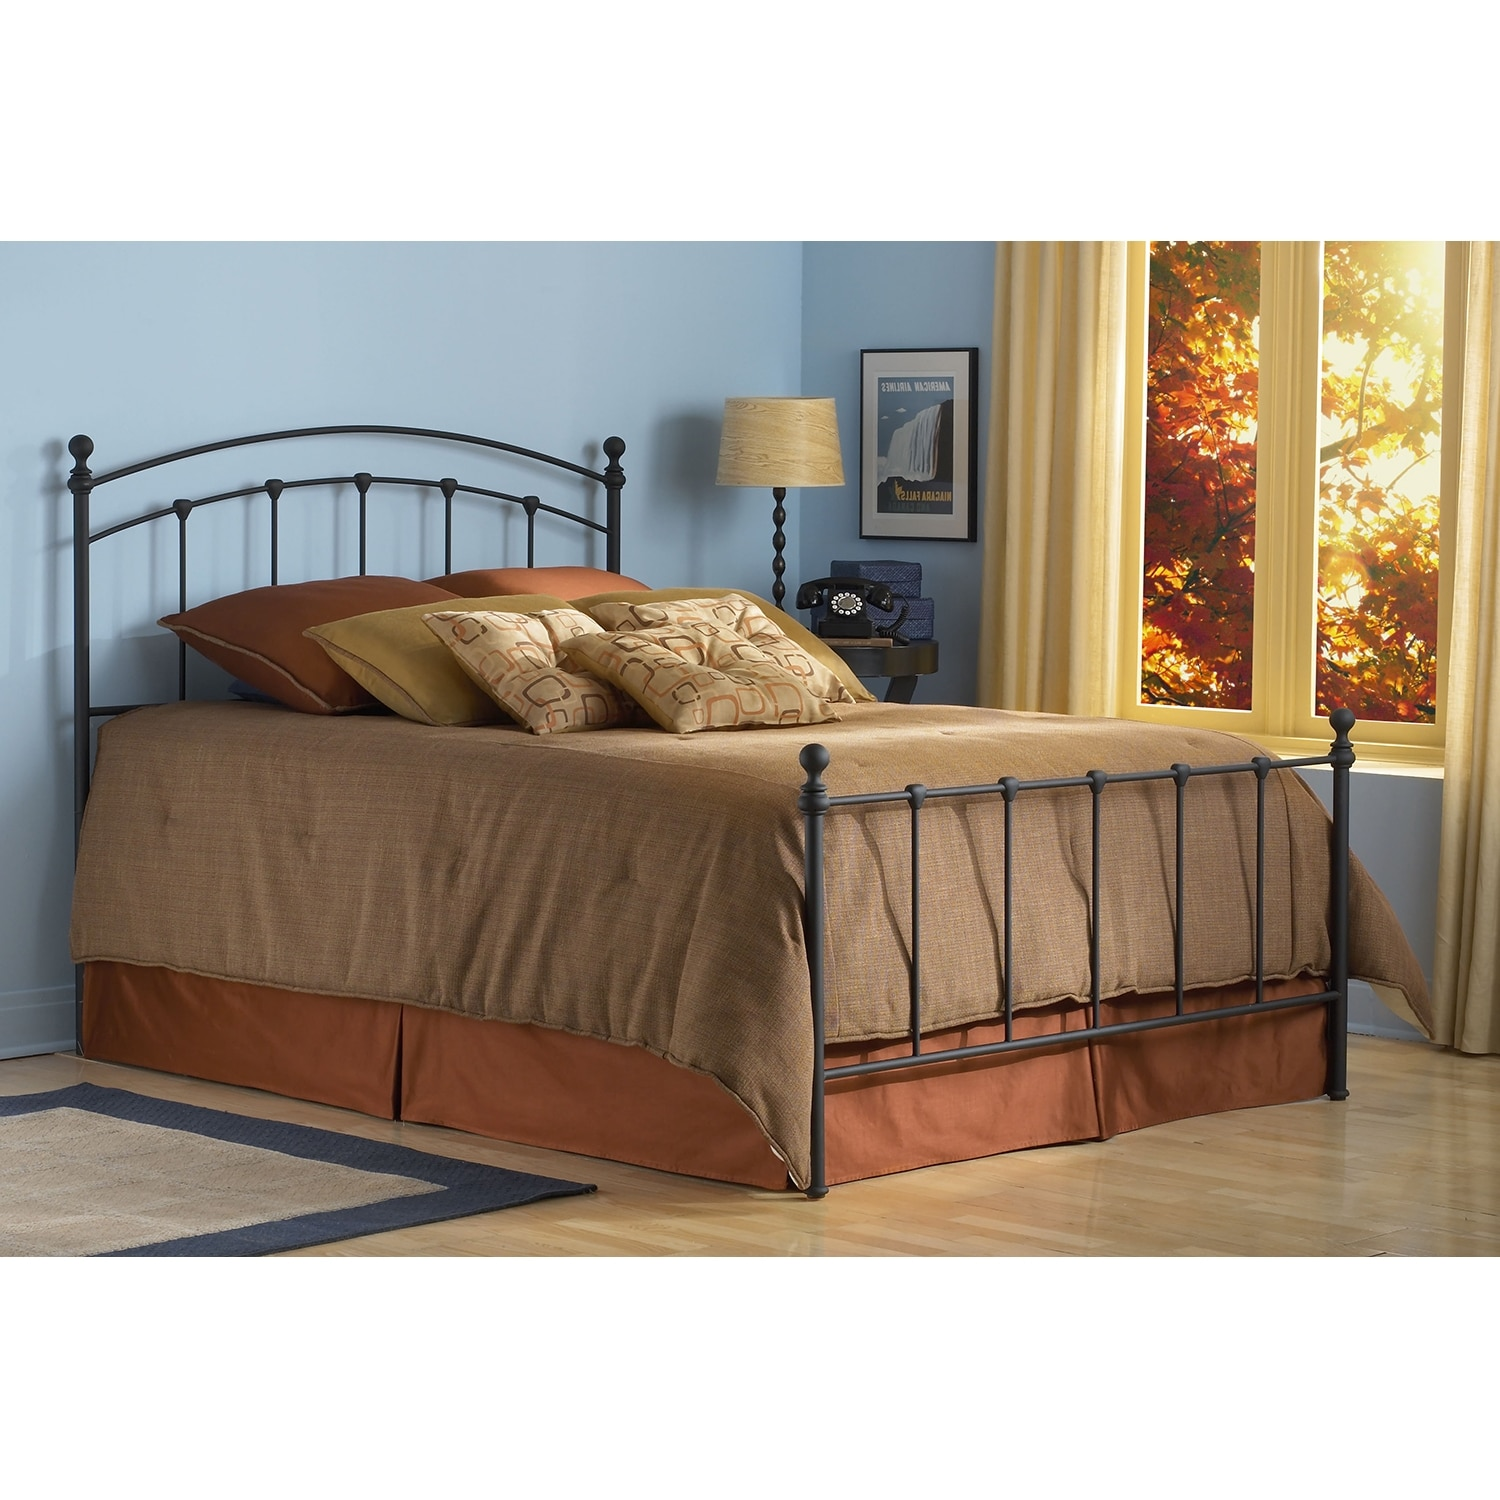 Sanford queen bed leon39s for Furniture mattress outlet of sanford